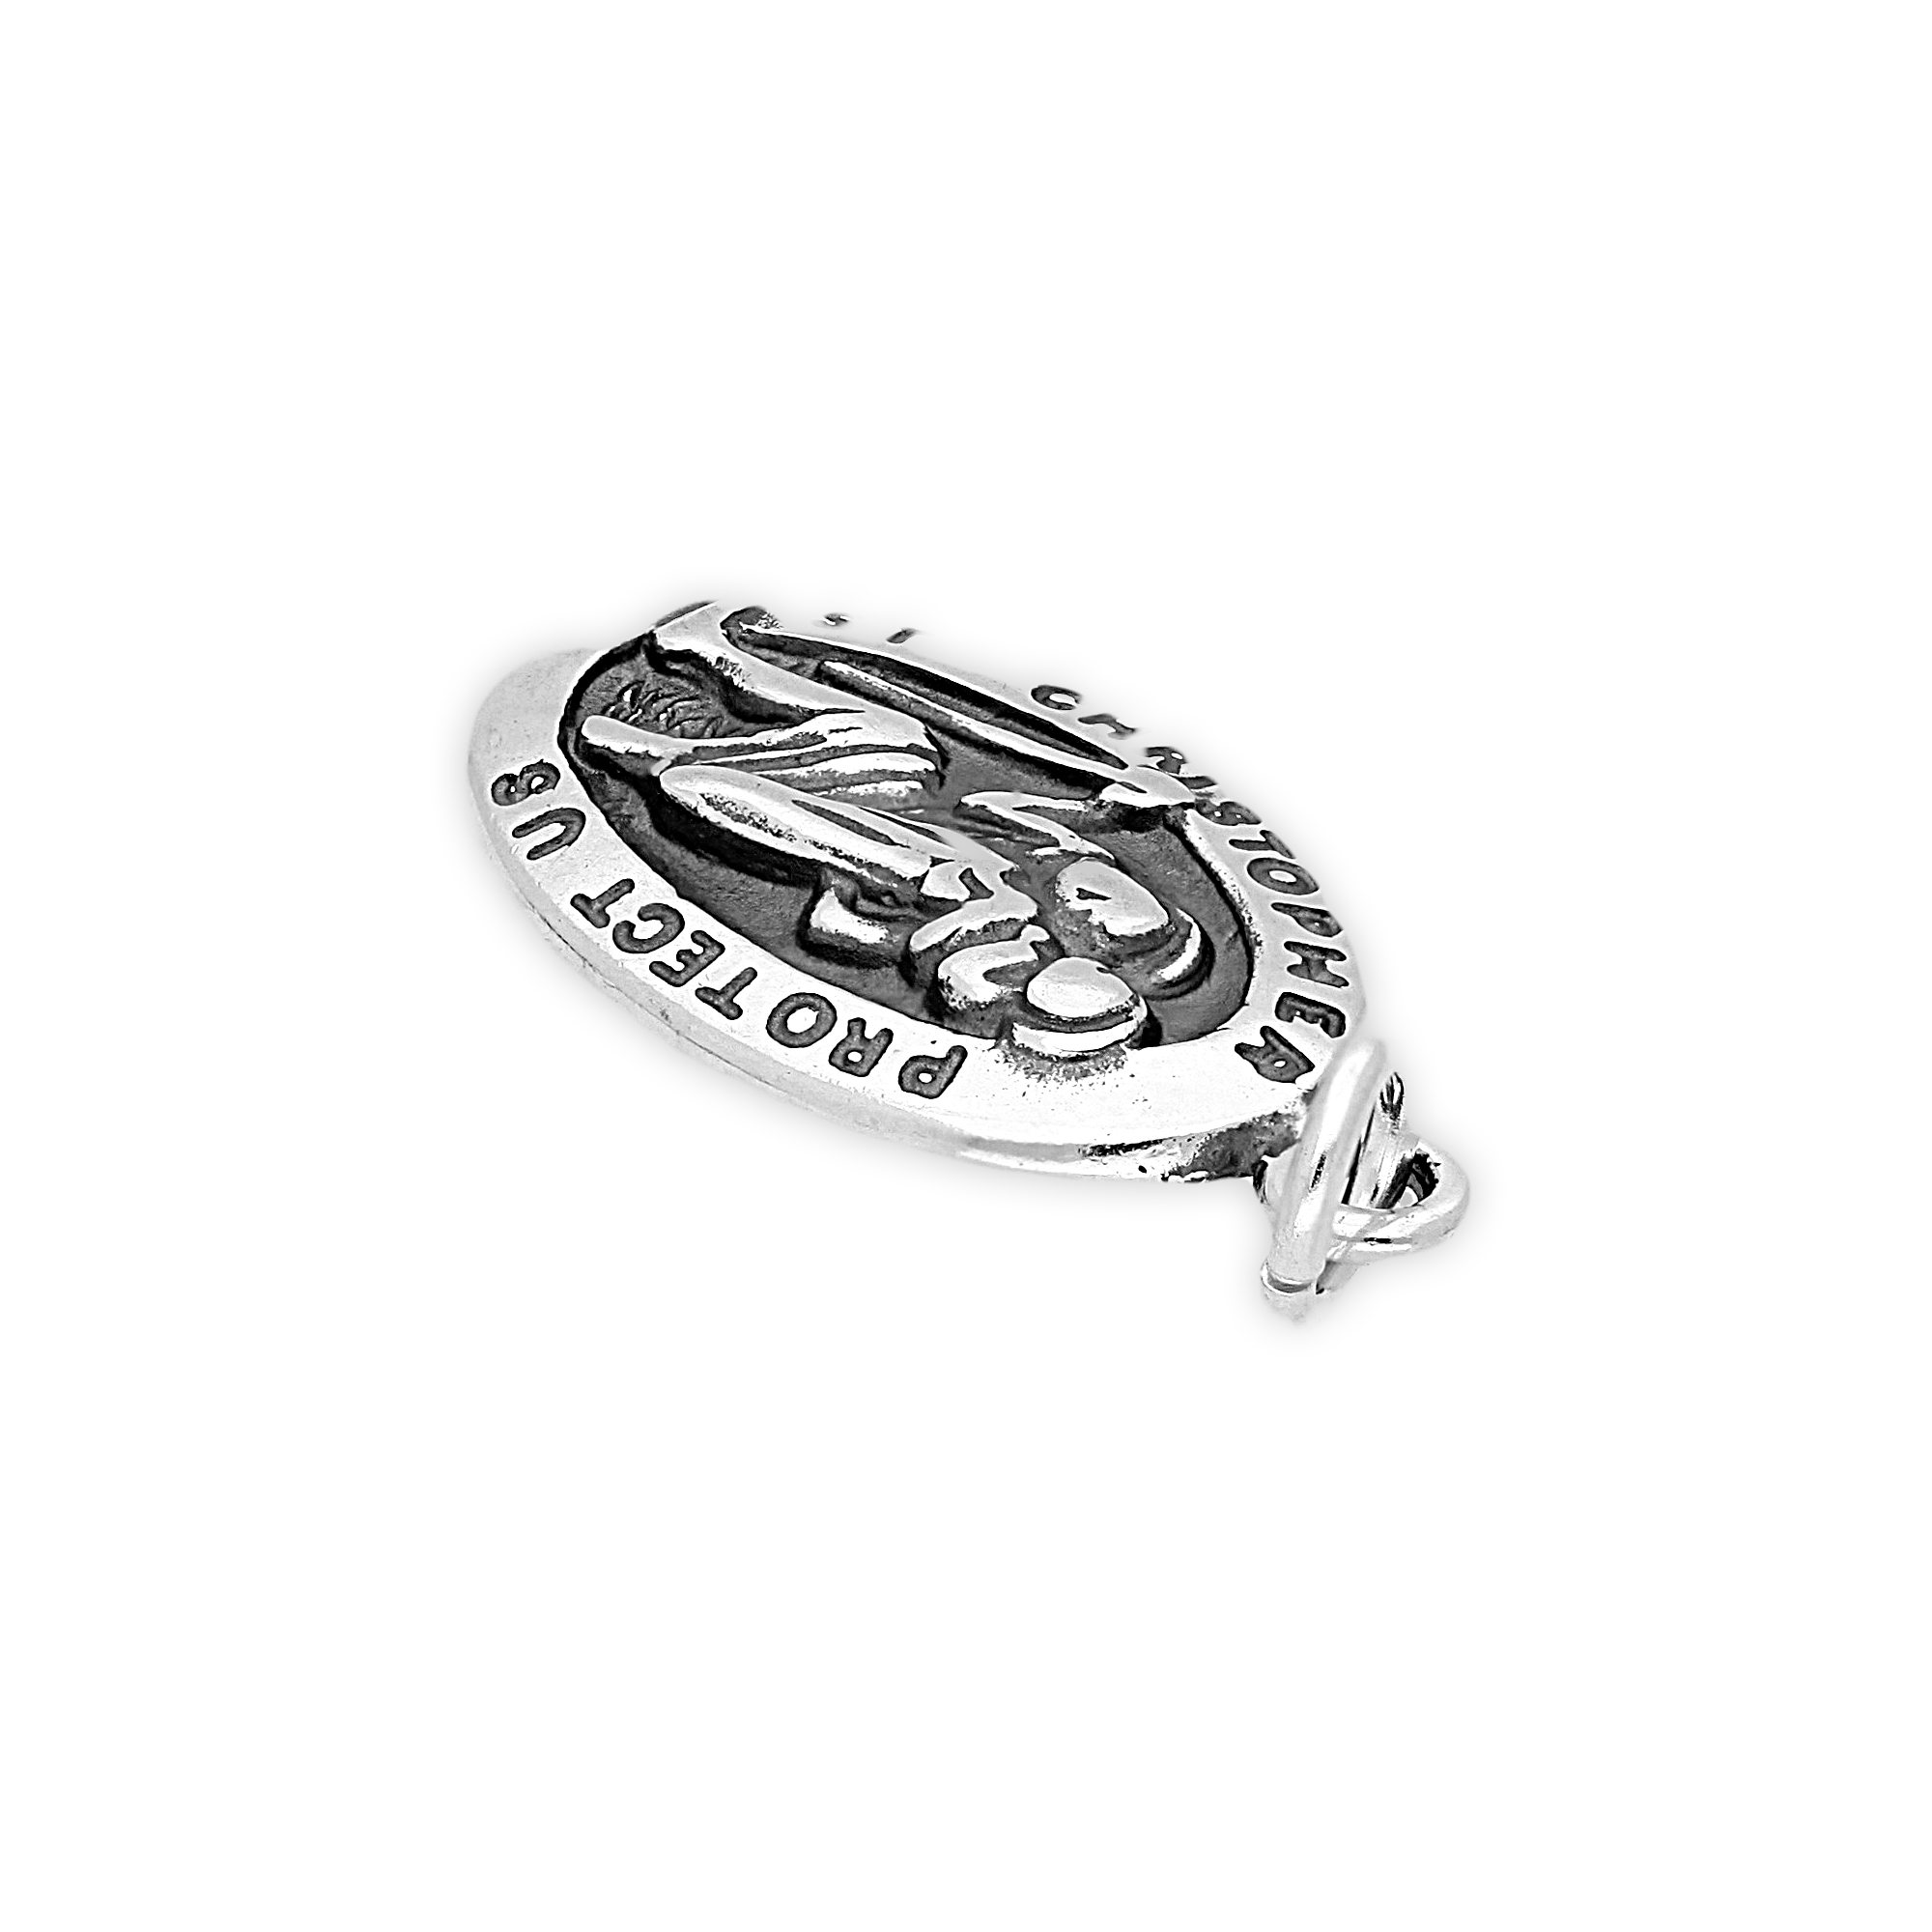 Thecharmworks 925 Sterling Silver St Christopher Charm